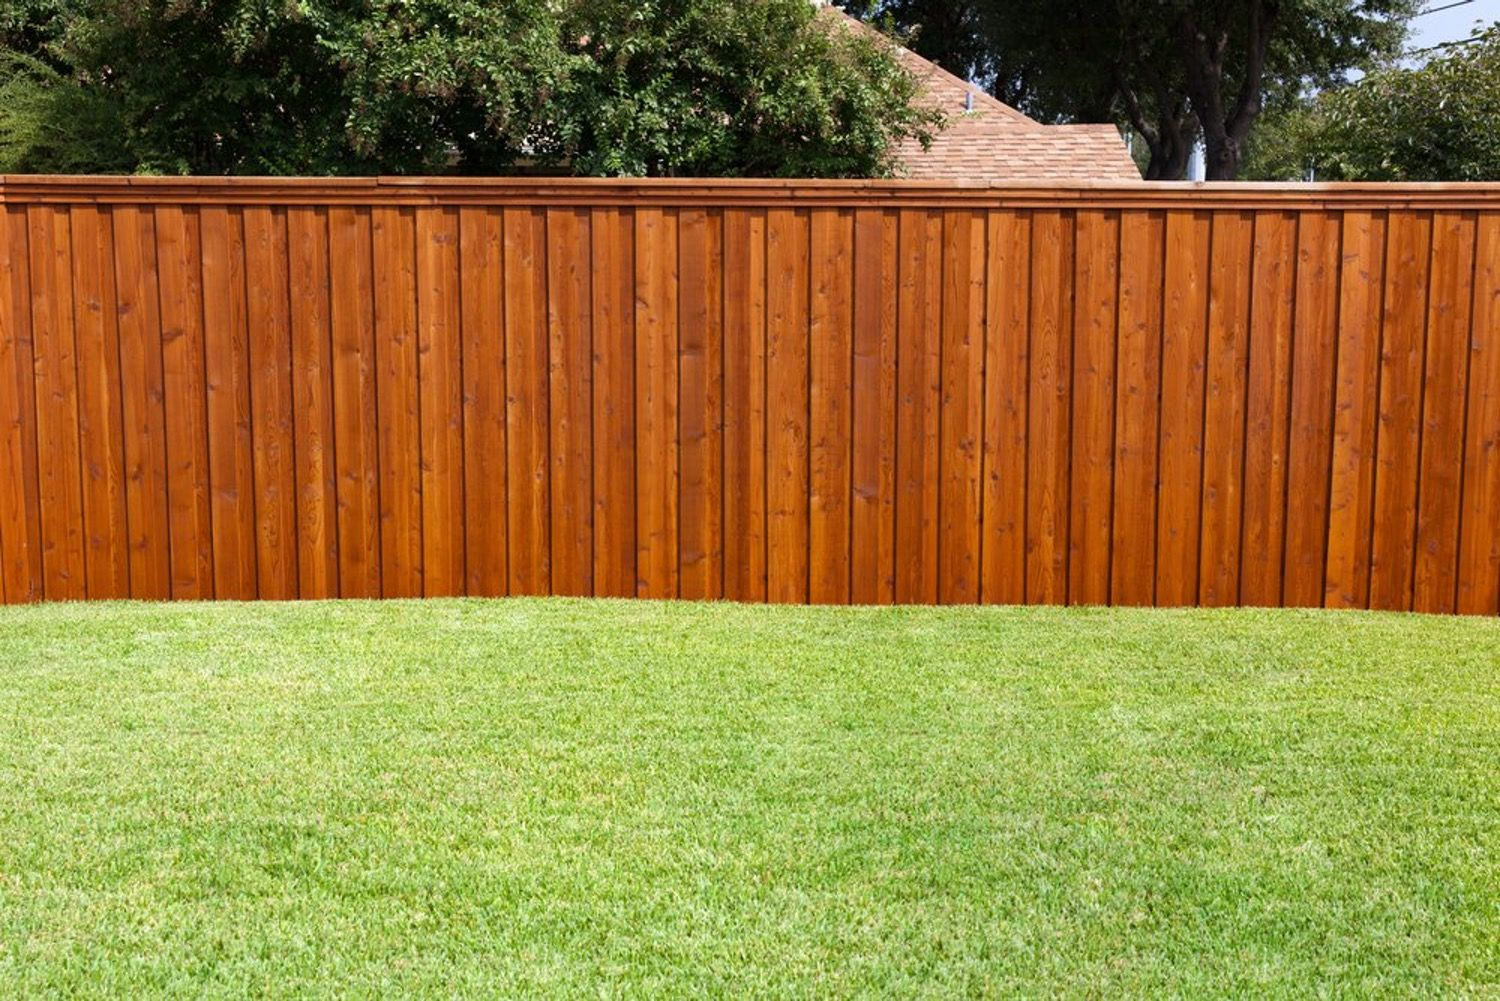 How Much Did it Cost to Build a Wooden Privacy Fence ...